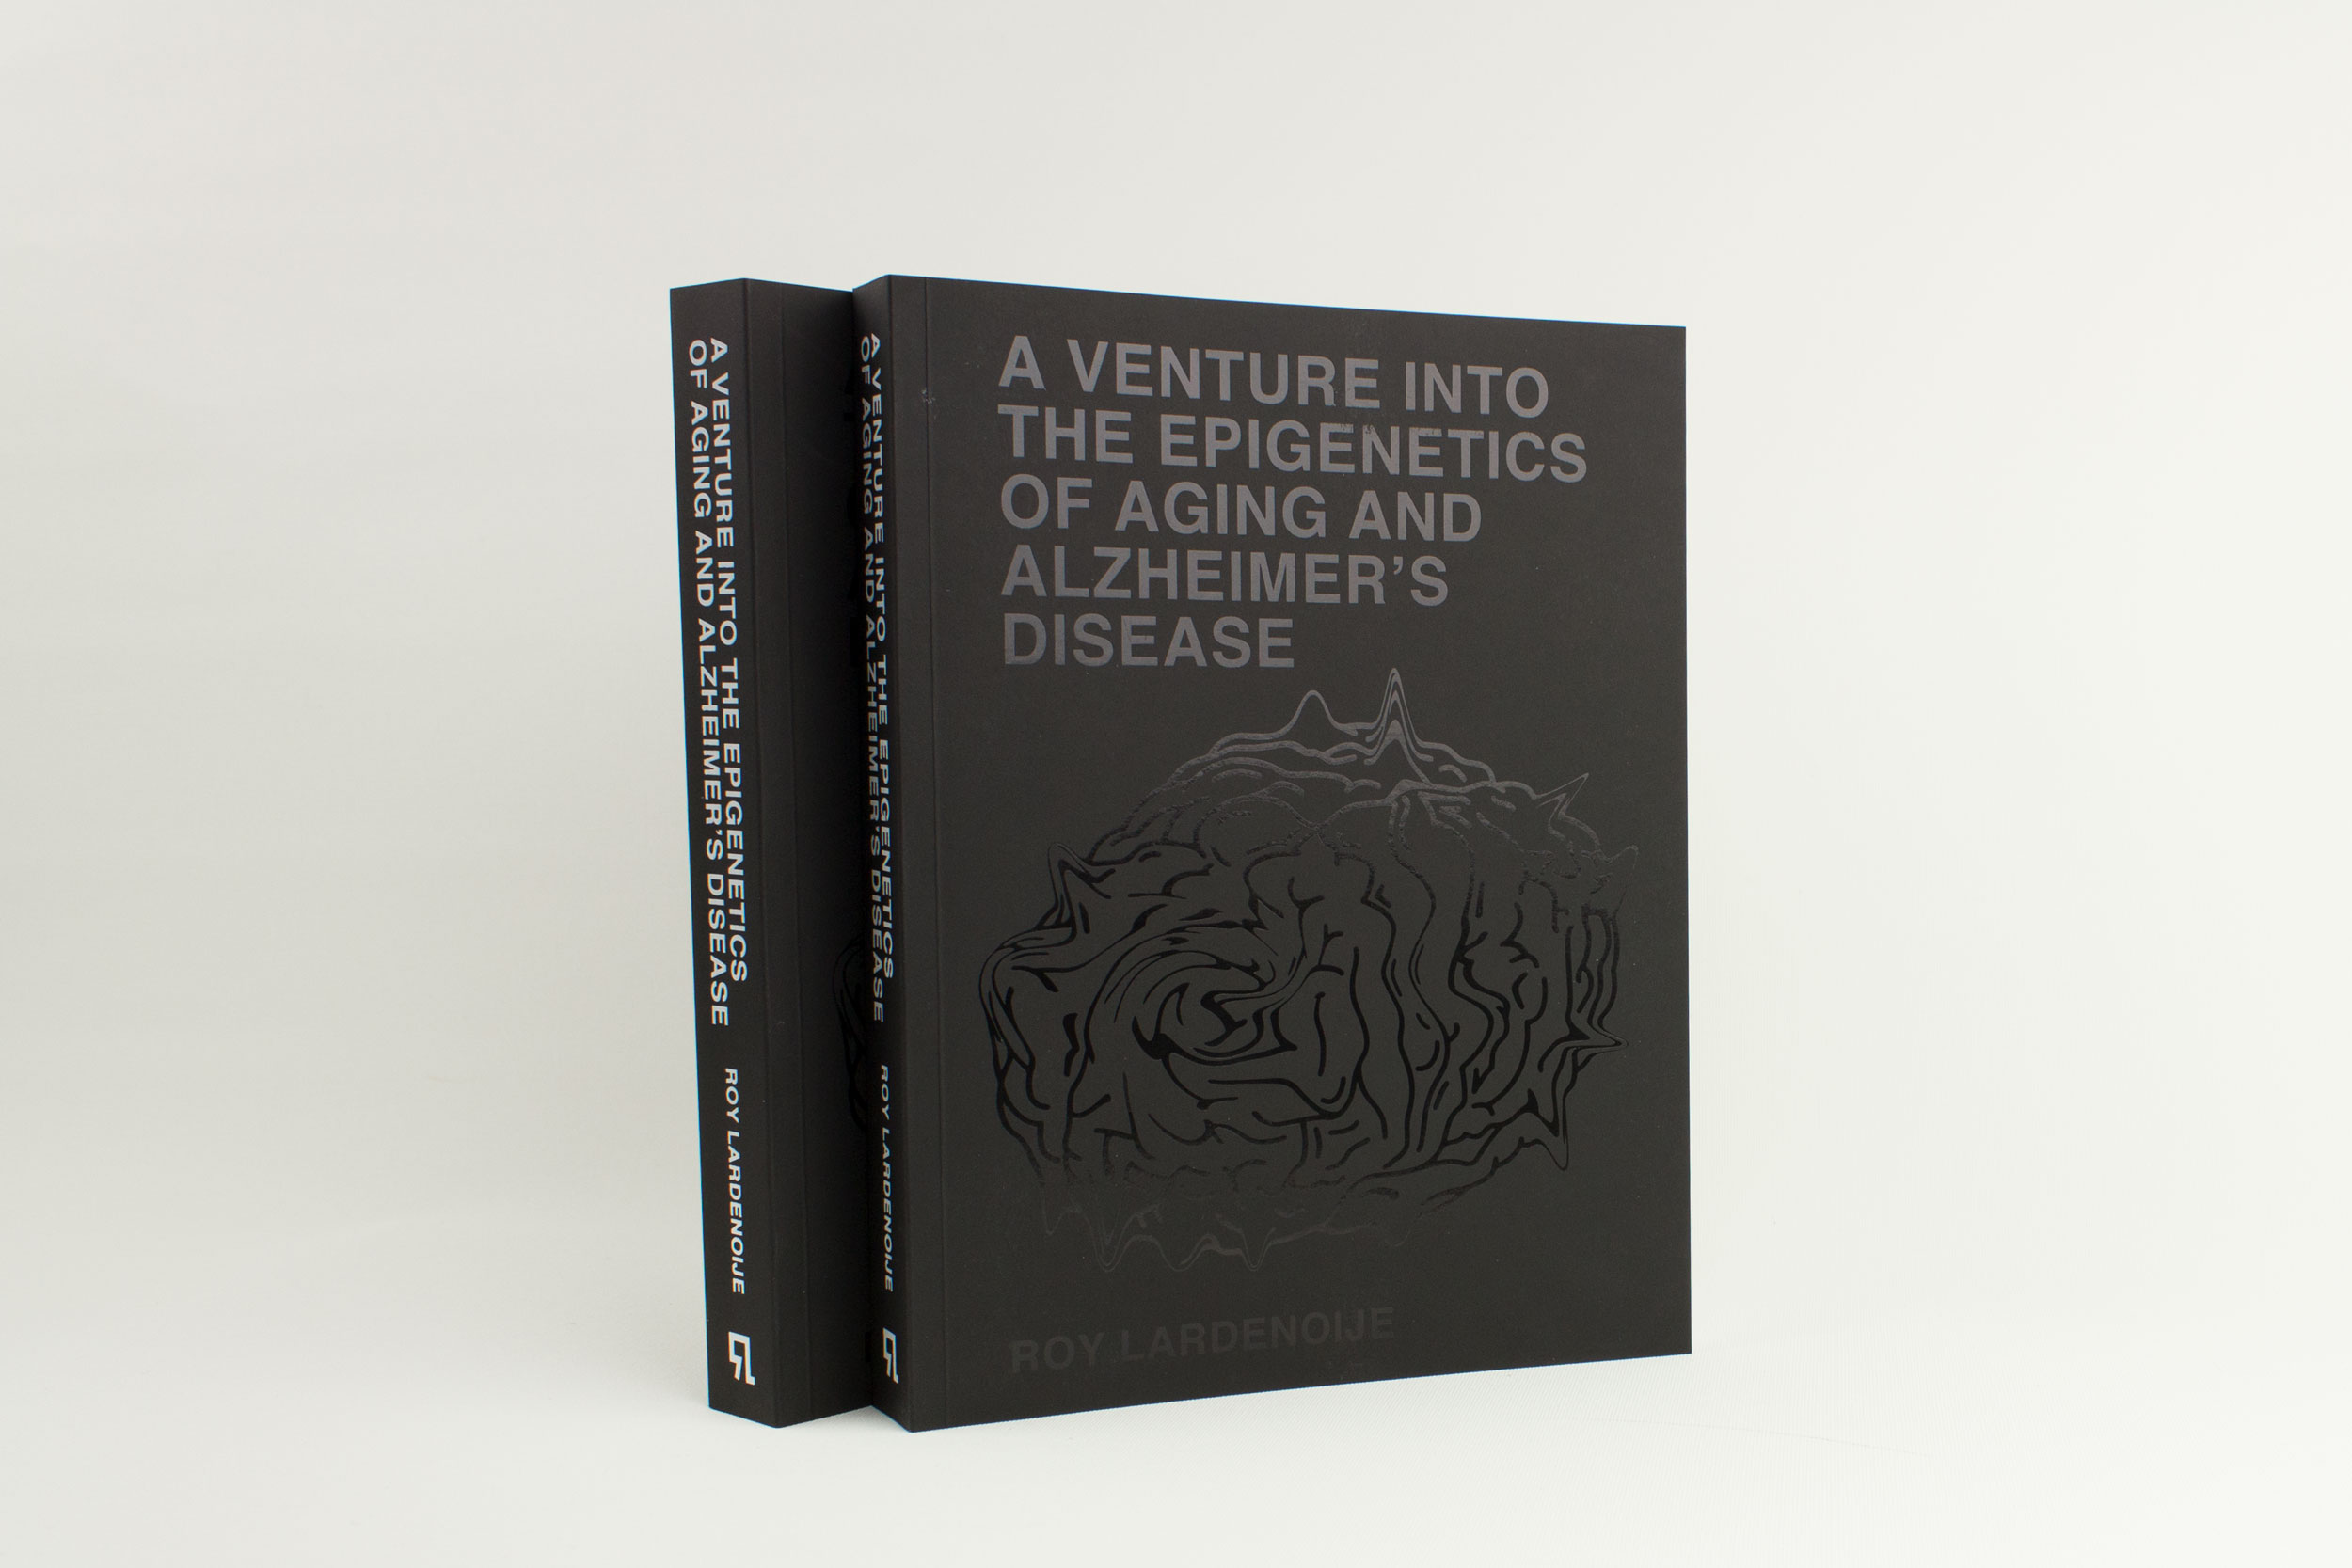 A-Venture-Into-The-Epigenetics-of-Aging-and-Alzheimers-Disease-3